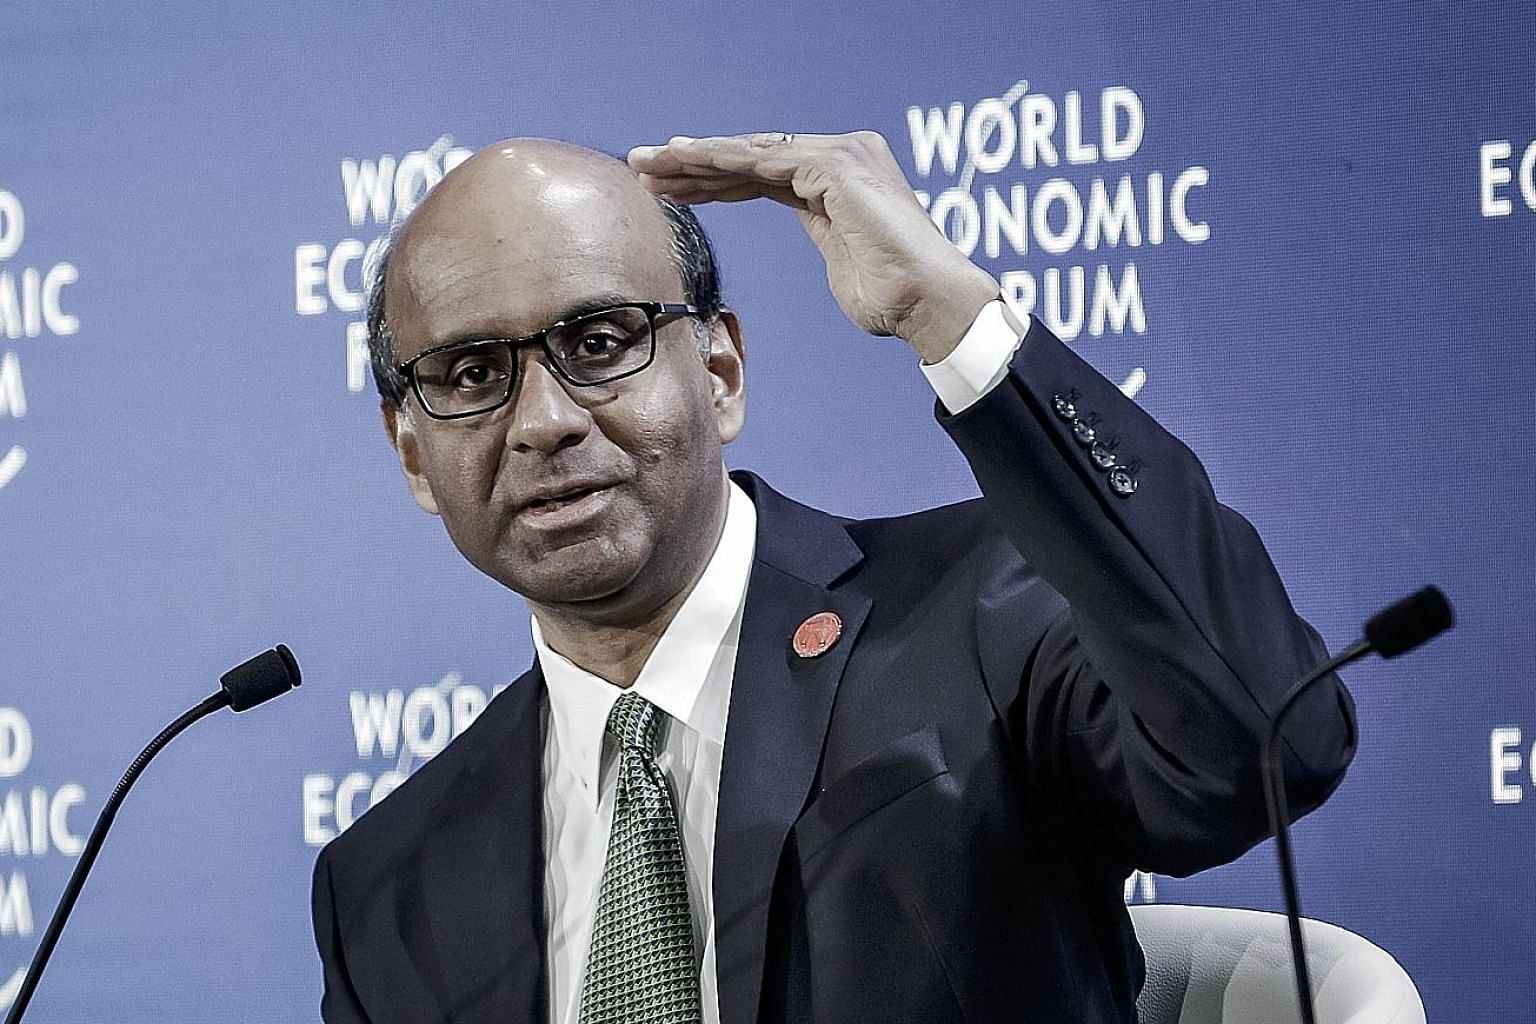 Deputy Prime Minister Tharman Shanmugaratnam said in Dalian yesterday that most companies fail to capitalise on cutting-edge technology, whether they are small, medium or large in size, with only the leaders in some sectors advancing innovations.